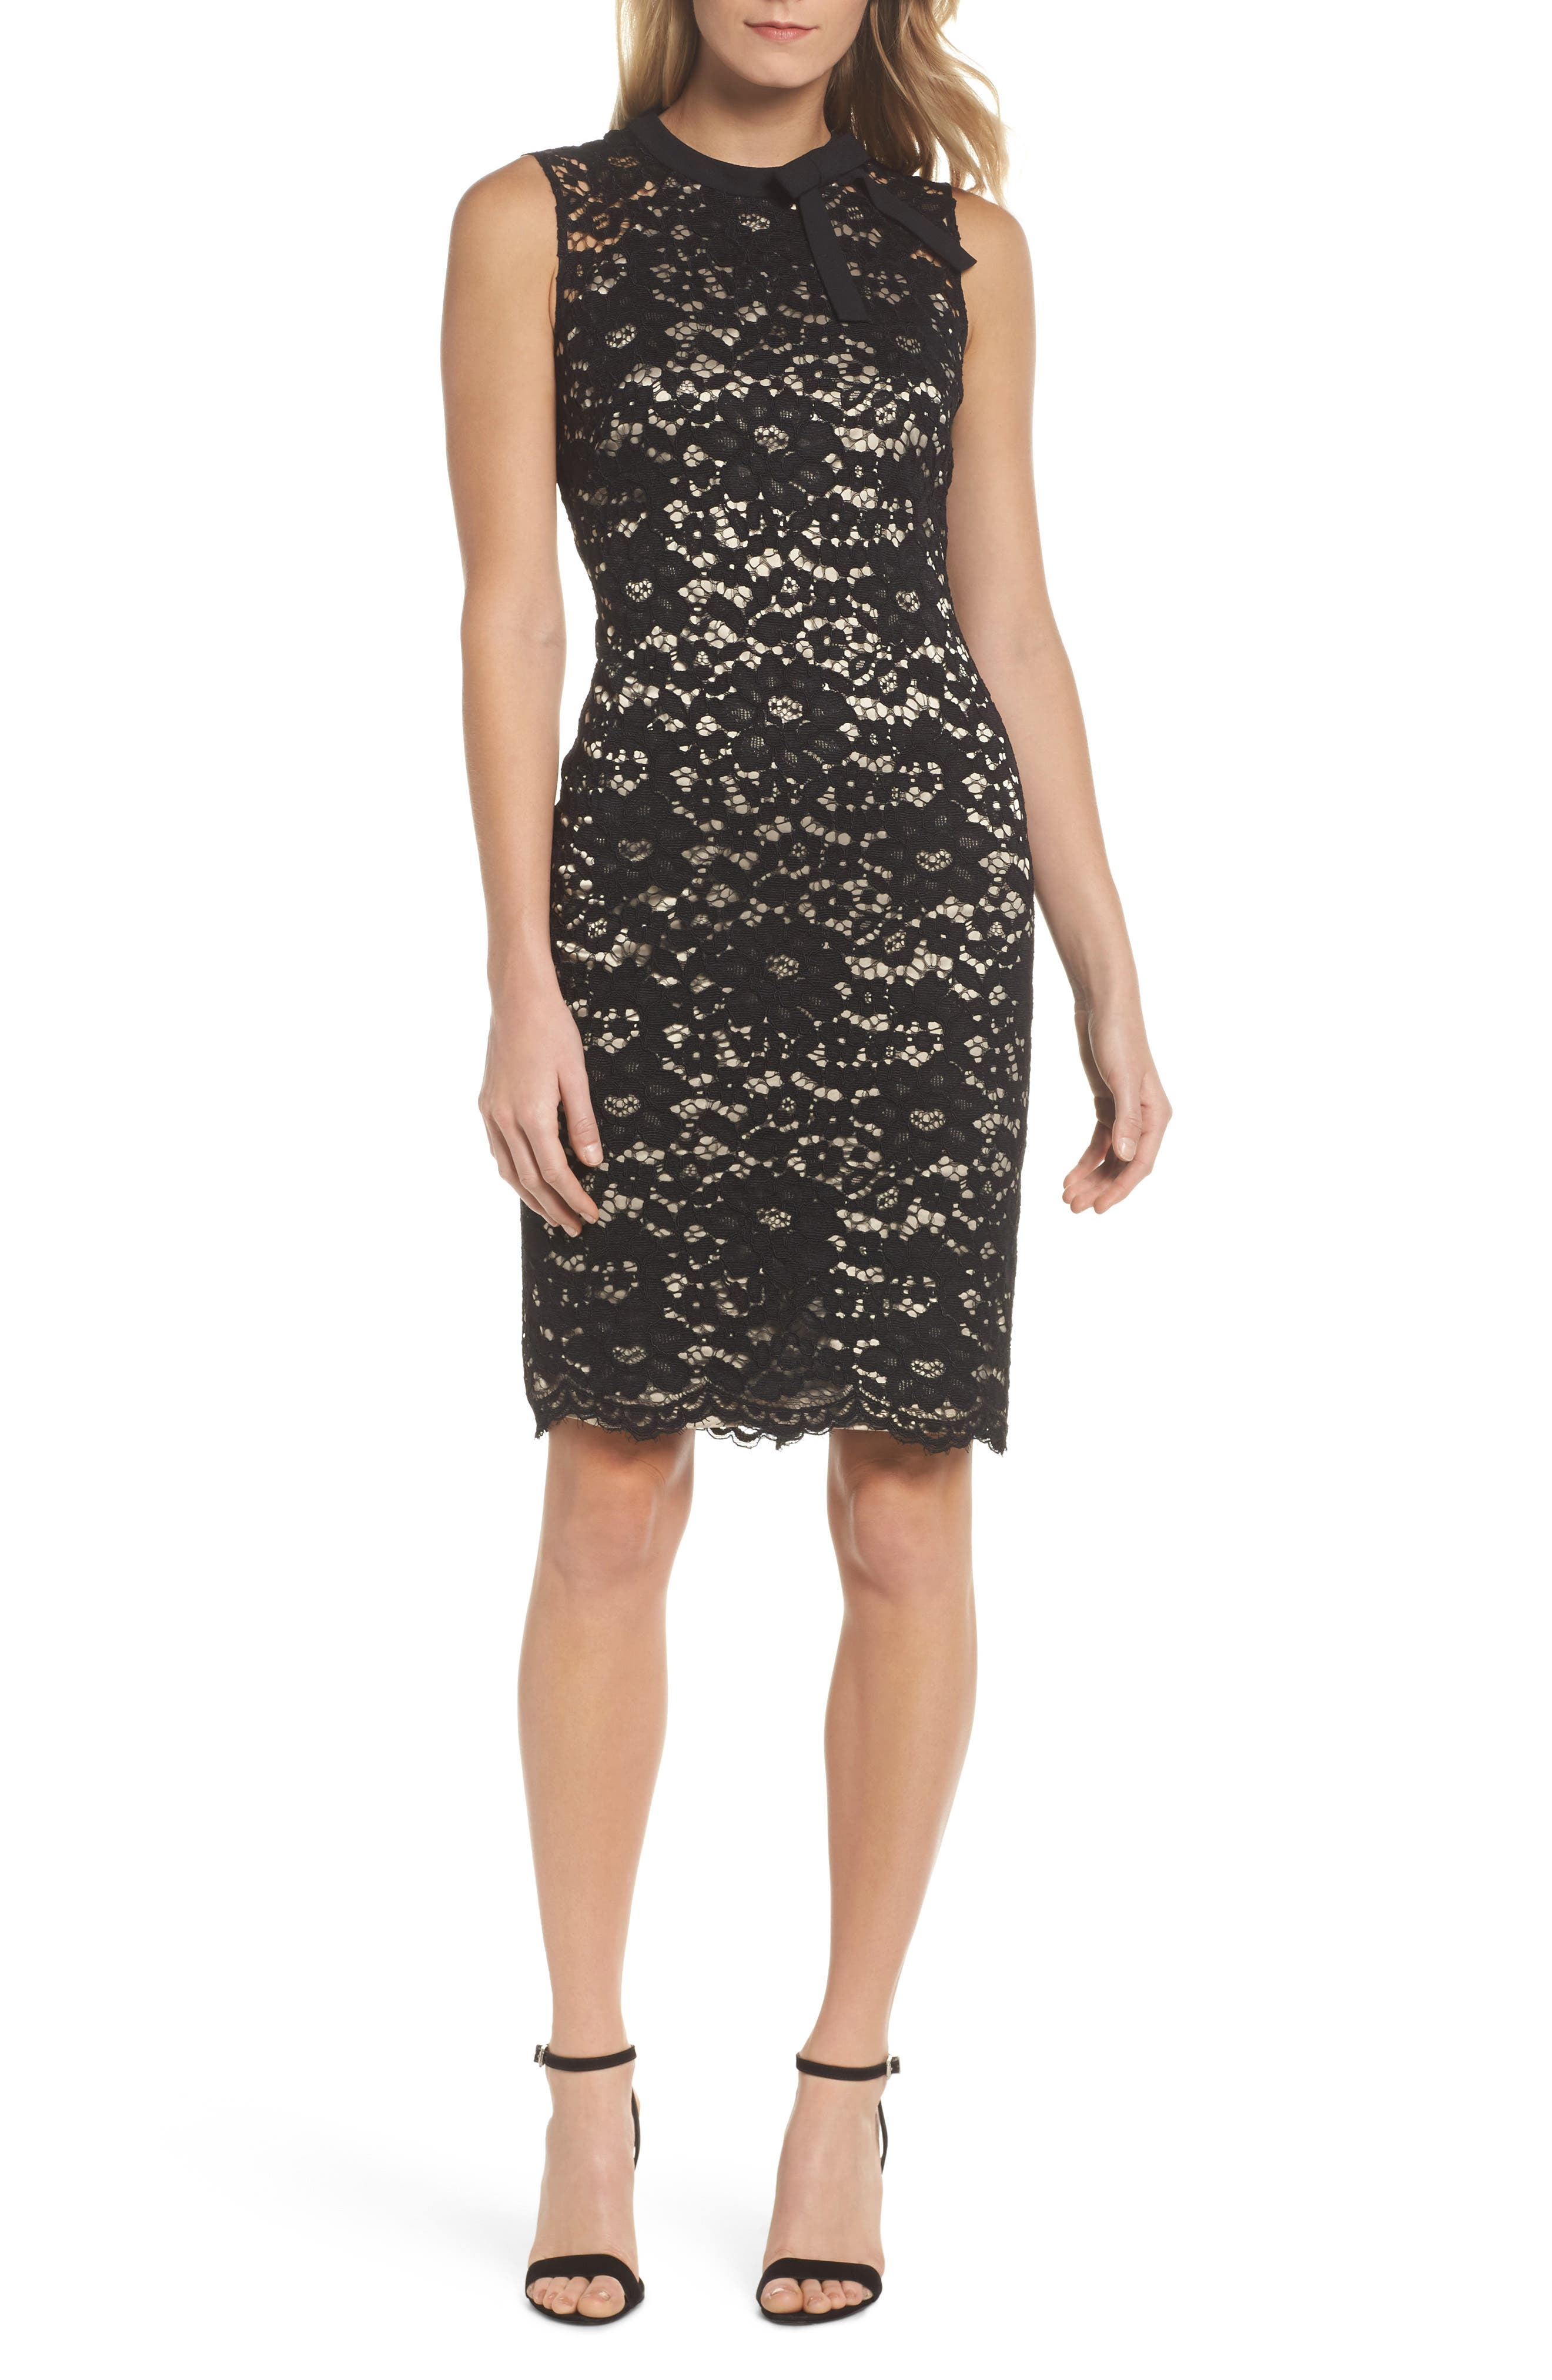 Alternate Image 1 Selected - Vince Camuto Lace Sheath Dress